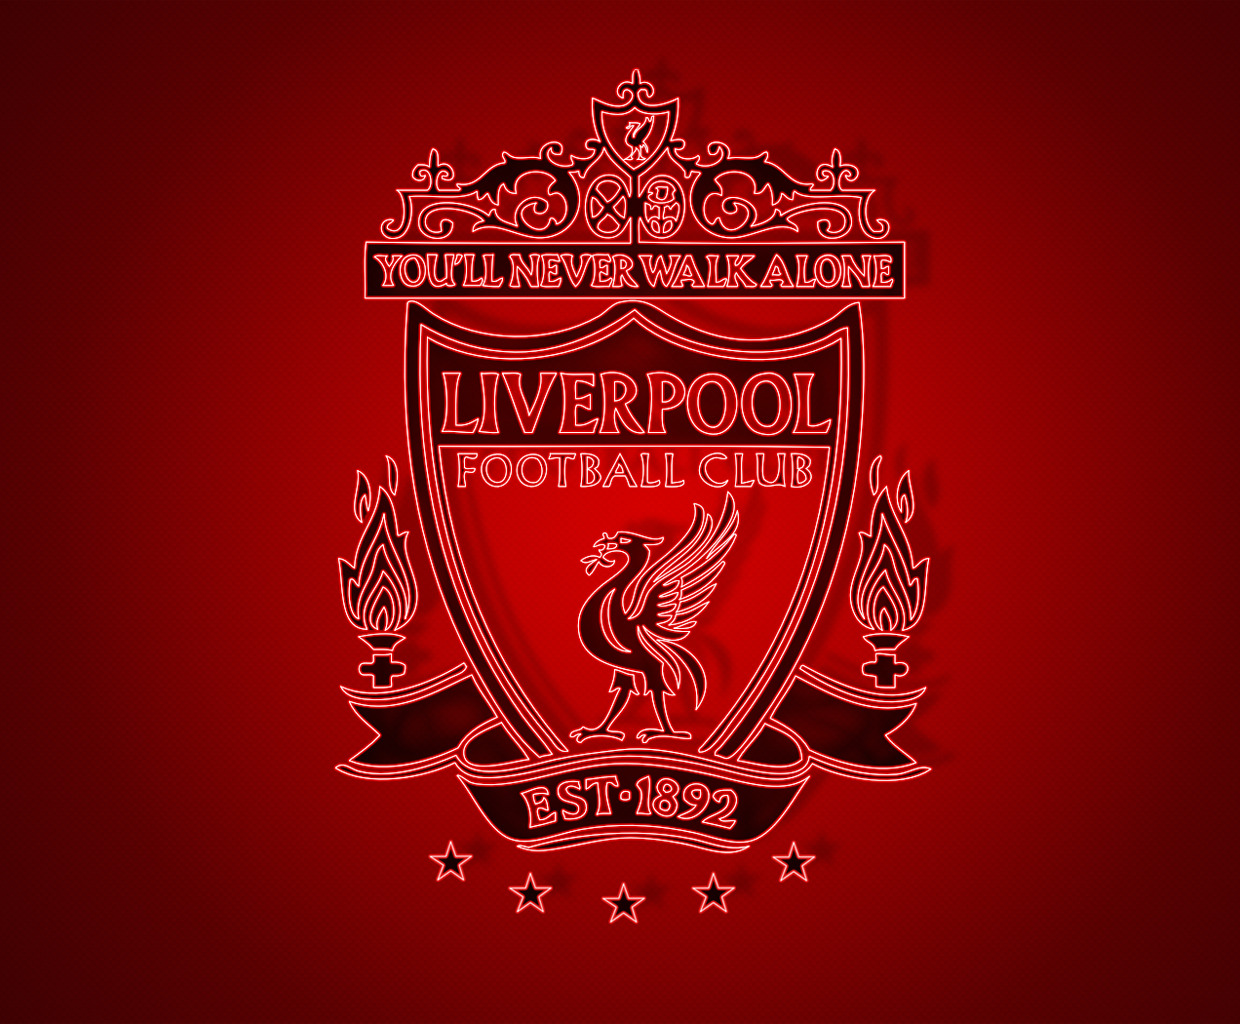 Liverpool Crest Wallpapers (44 Wallpapers) - Adorable ...